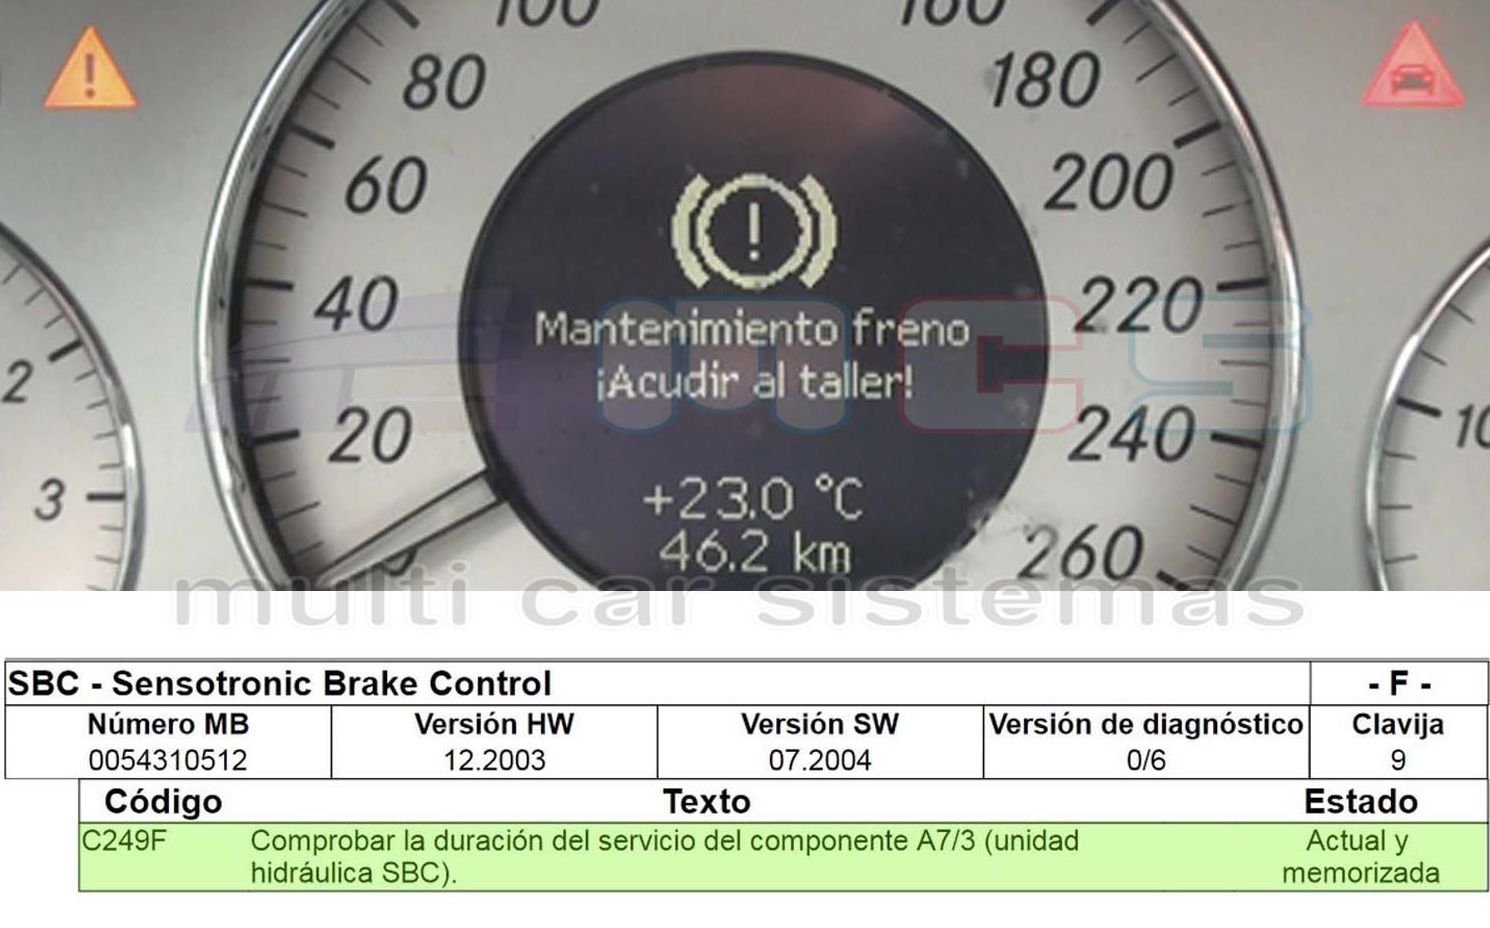 Fallo display cuadro error C249F SBC ABS Mercedes Benz E W211 CLS C219 SL R230 Mantenimiento freno